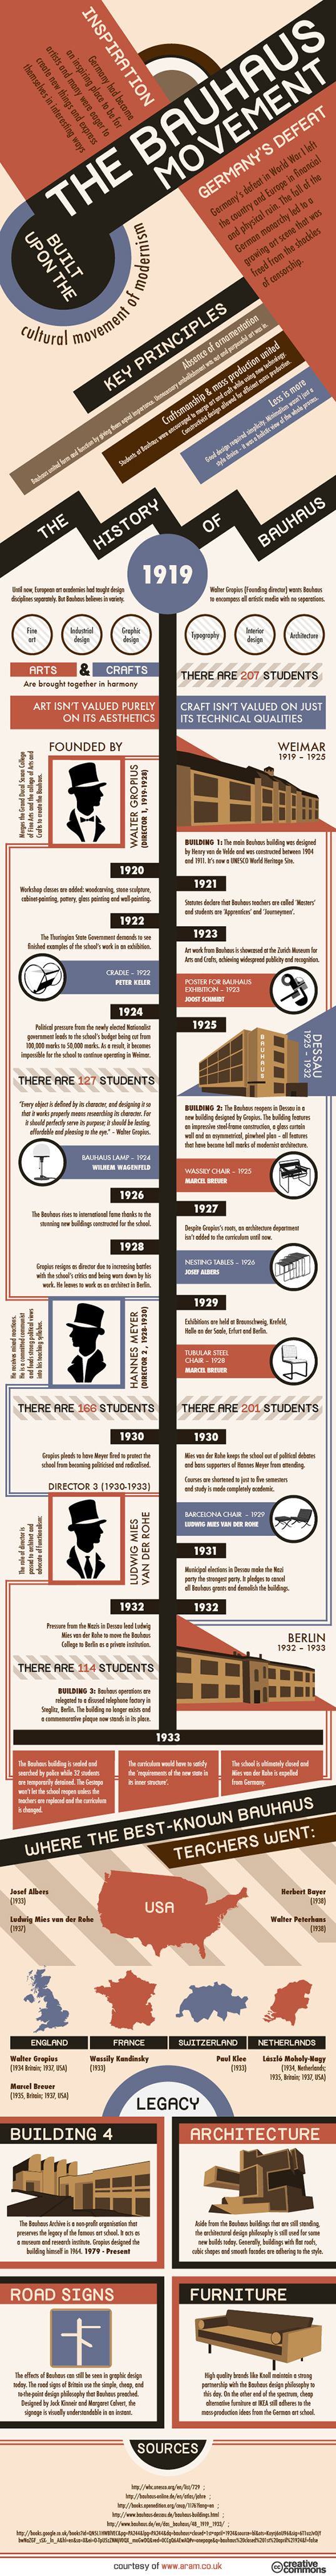 infographic the history of the bauhaus design movement inhabitat